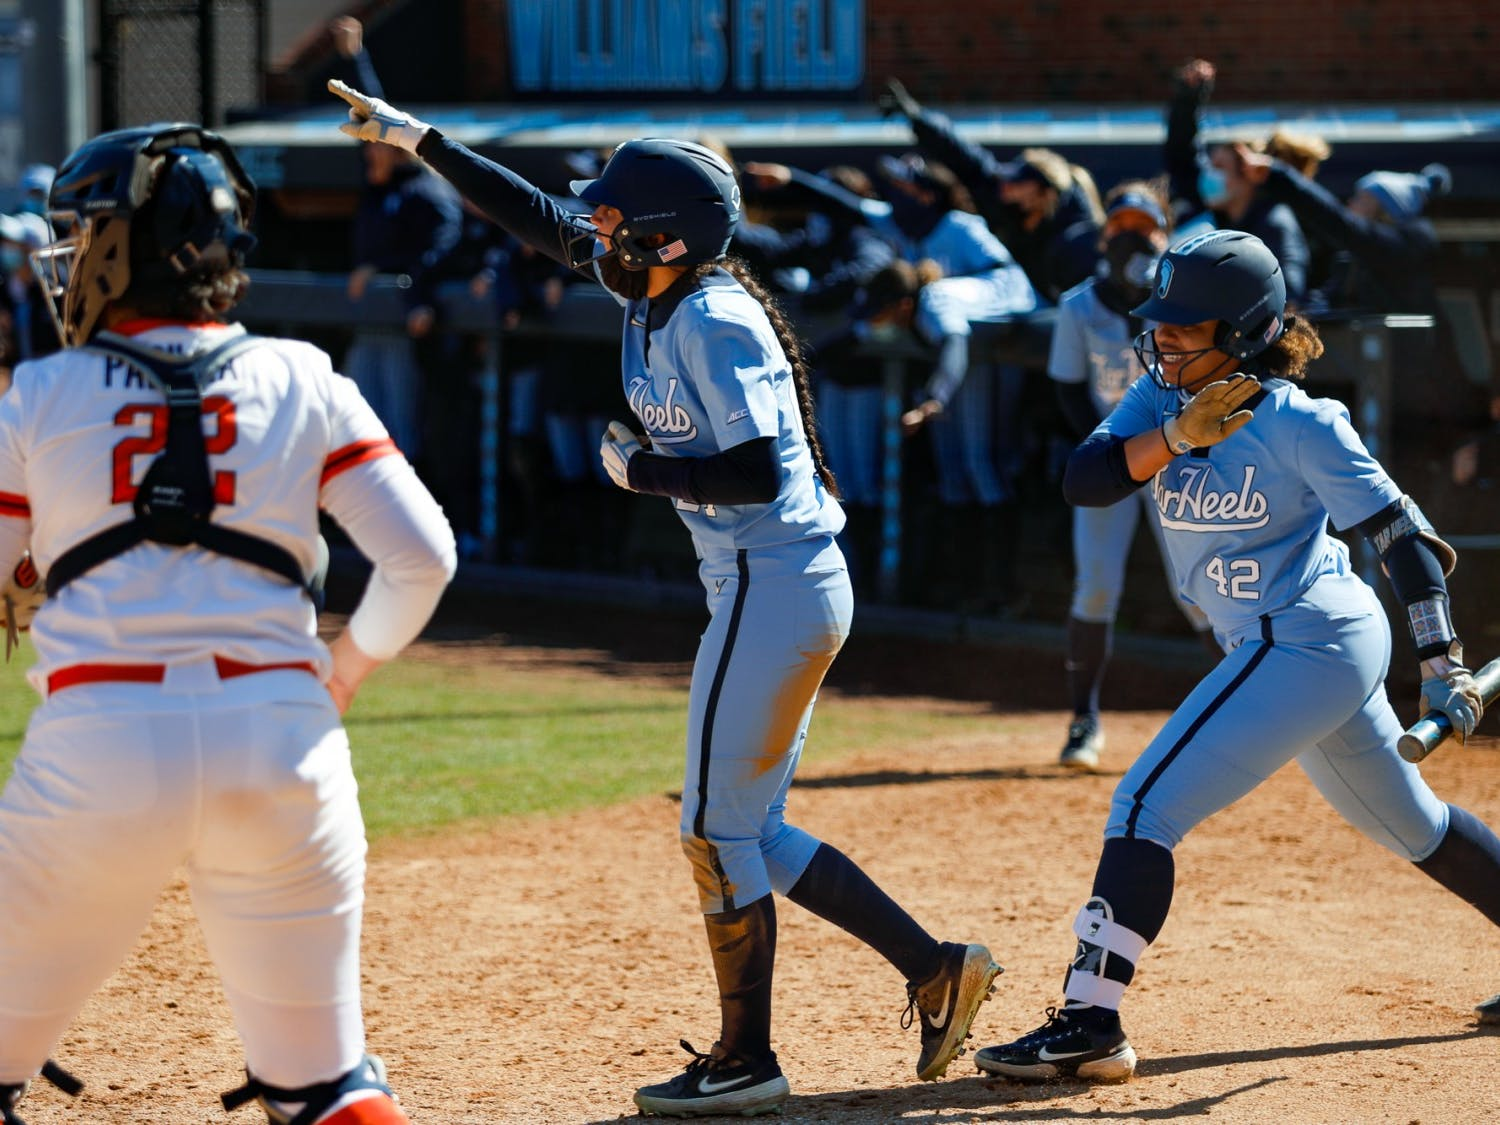 UNC sophomore outfielder Bri Stubbs (27) and junior pitcher Hannah George (42) celebrate after scoring two runs to tie the game in Anderson Softball Stadium in Chapel Hill, NC on Feb. 20, 2021. The Syracuse Orange beat the Tar Heels 3-2.